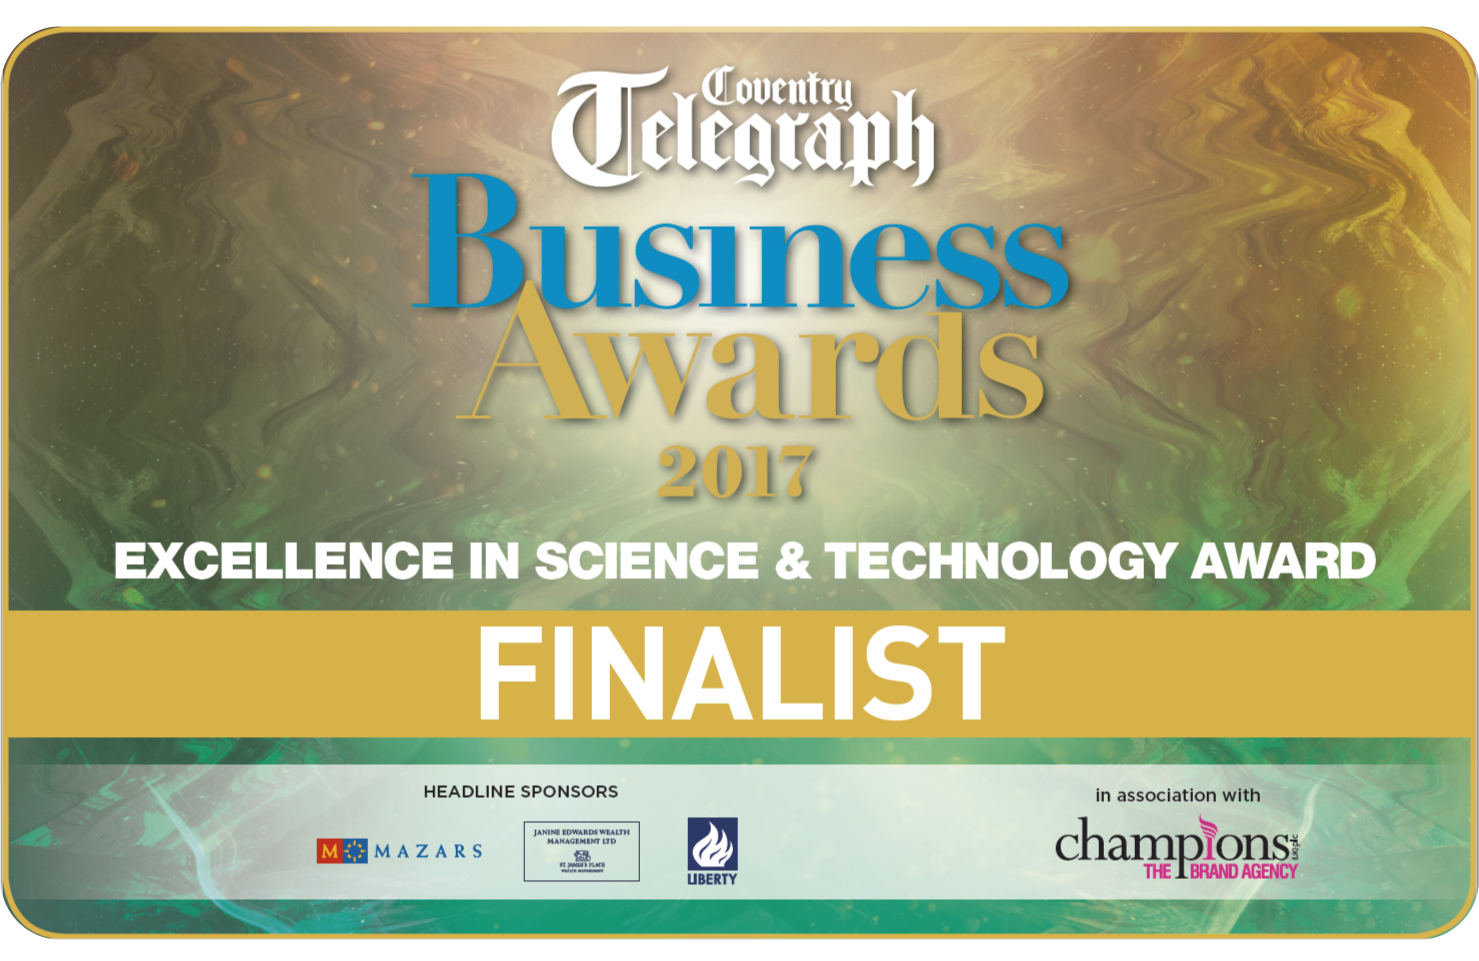 Coventry Telegraph Business Awards 2017